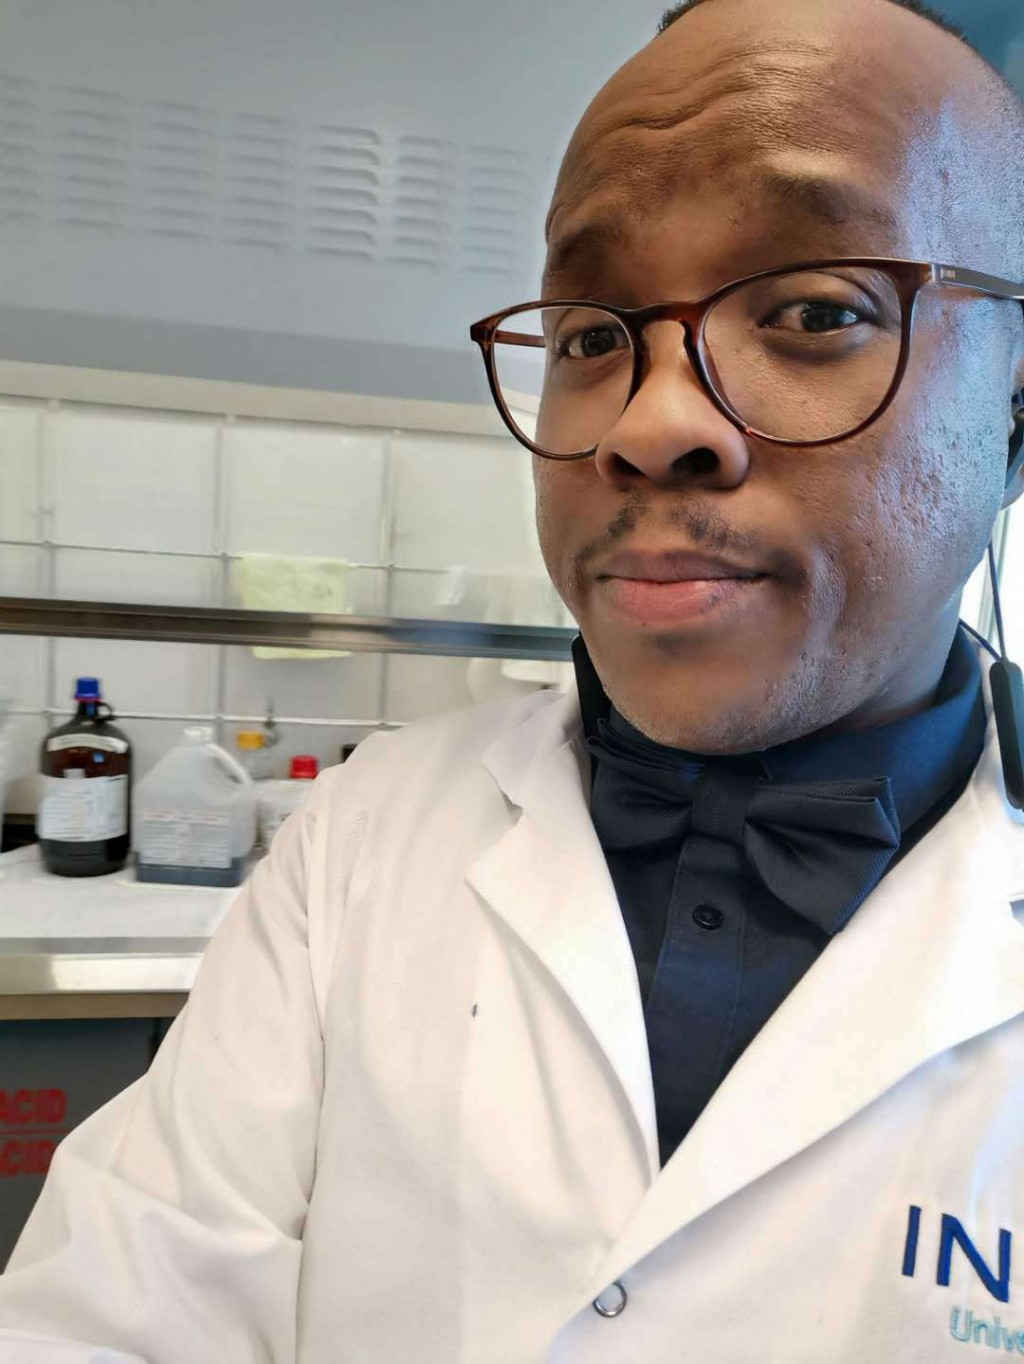 This 2019 photo provided by Itumeleng Moroenyane shows him in Laval, Quebec, Canada. Moroenyane, a doctoral student at the National Institute of Scien...